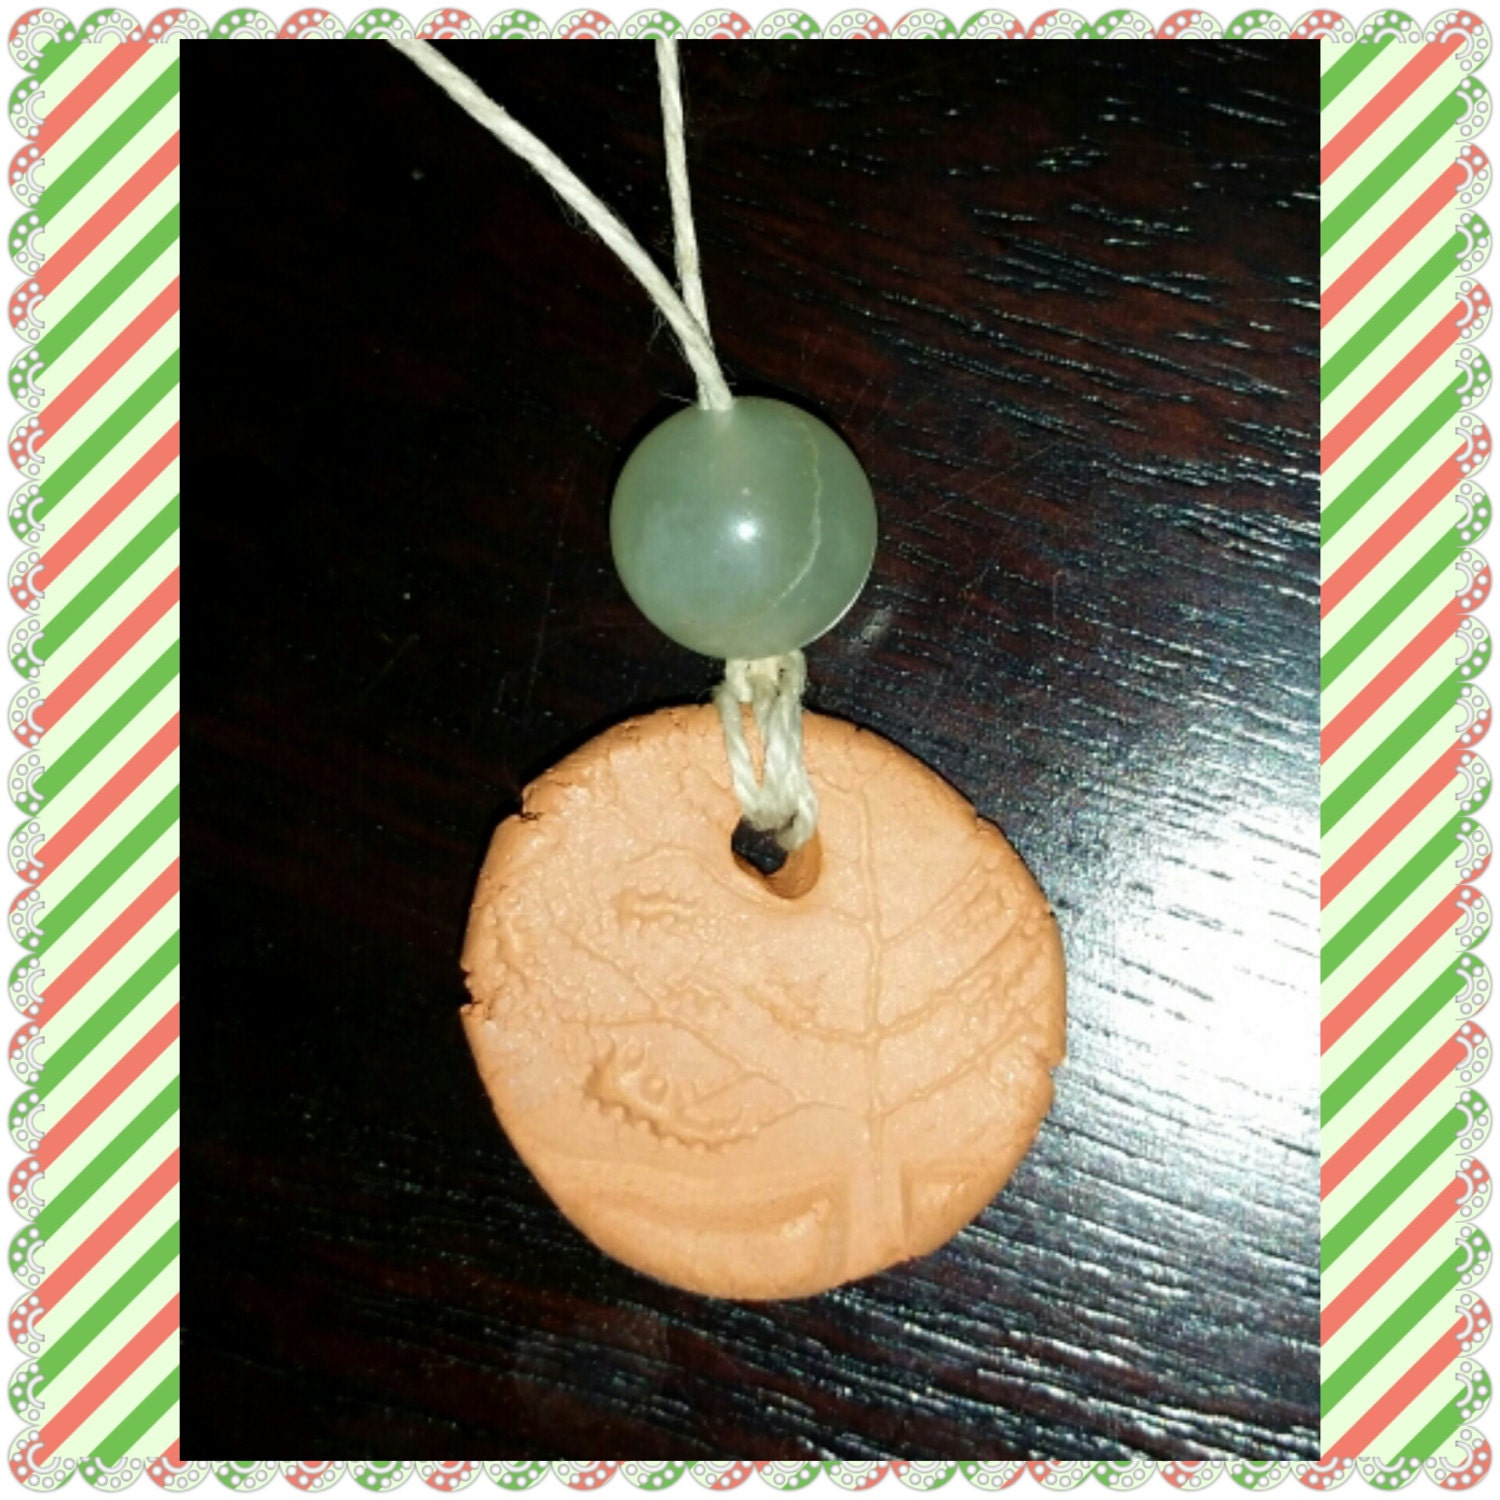 #B03B1B Essential Oil Diffuser Necklace Set. Jade And Clay Most Effective 1175 Aromatherapy Diffuser Set pictures with 1500x1500 px on helpvideos.info - Air Conditioners, Air Coolers and more